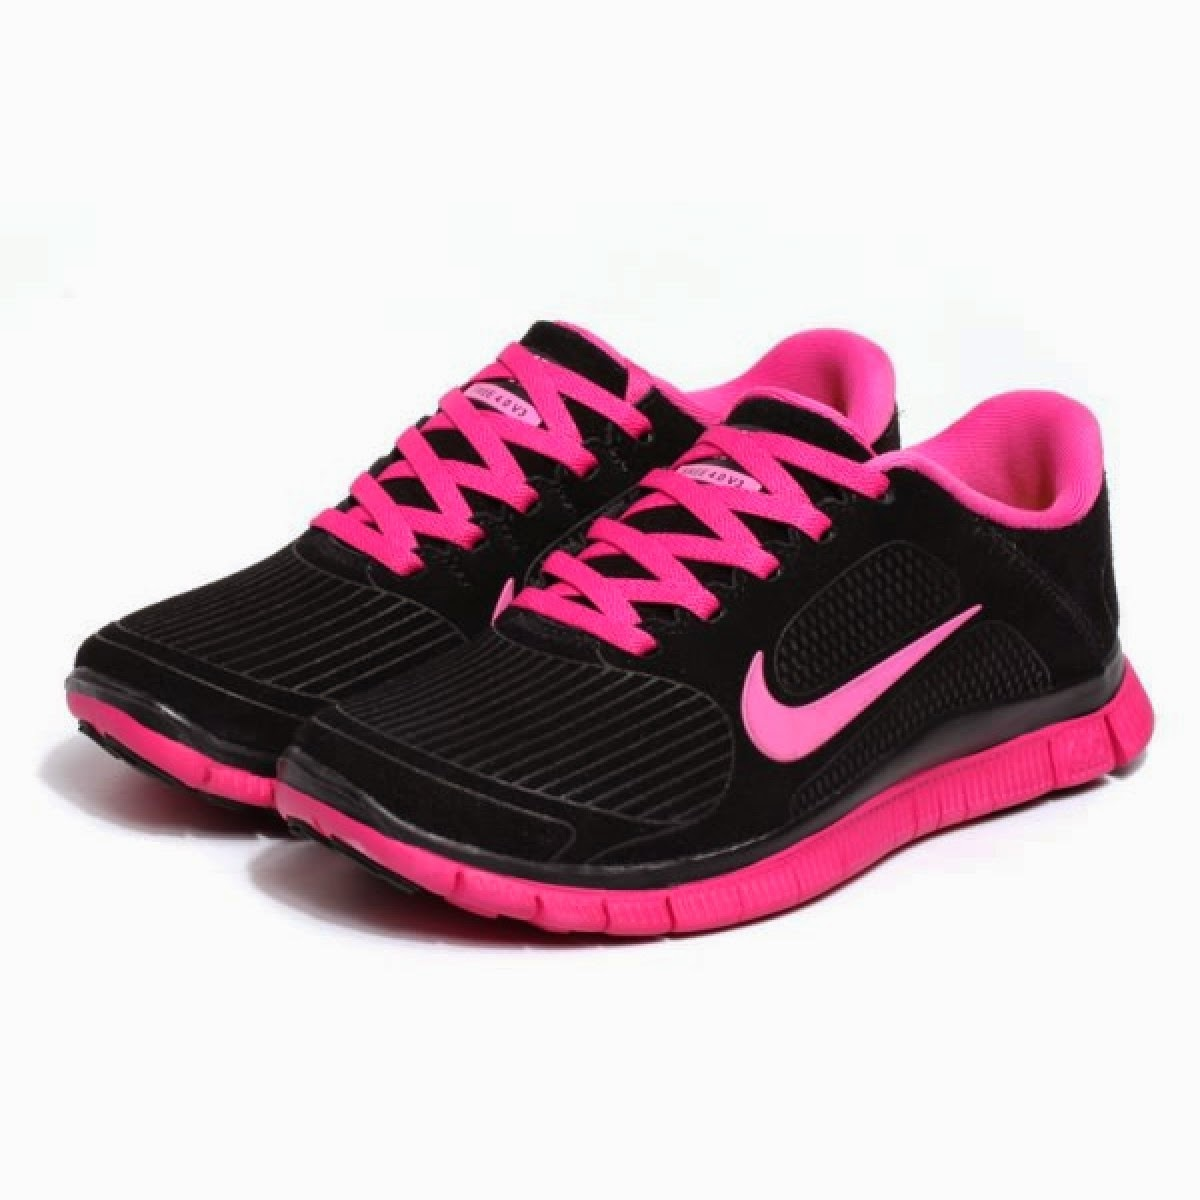 Pics For Neon Green Nike Running Shoes | Fashion's Feel ...